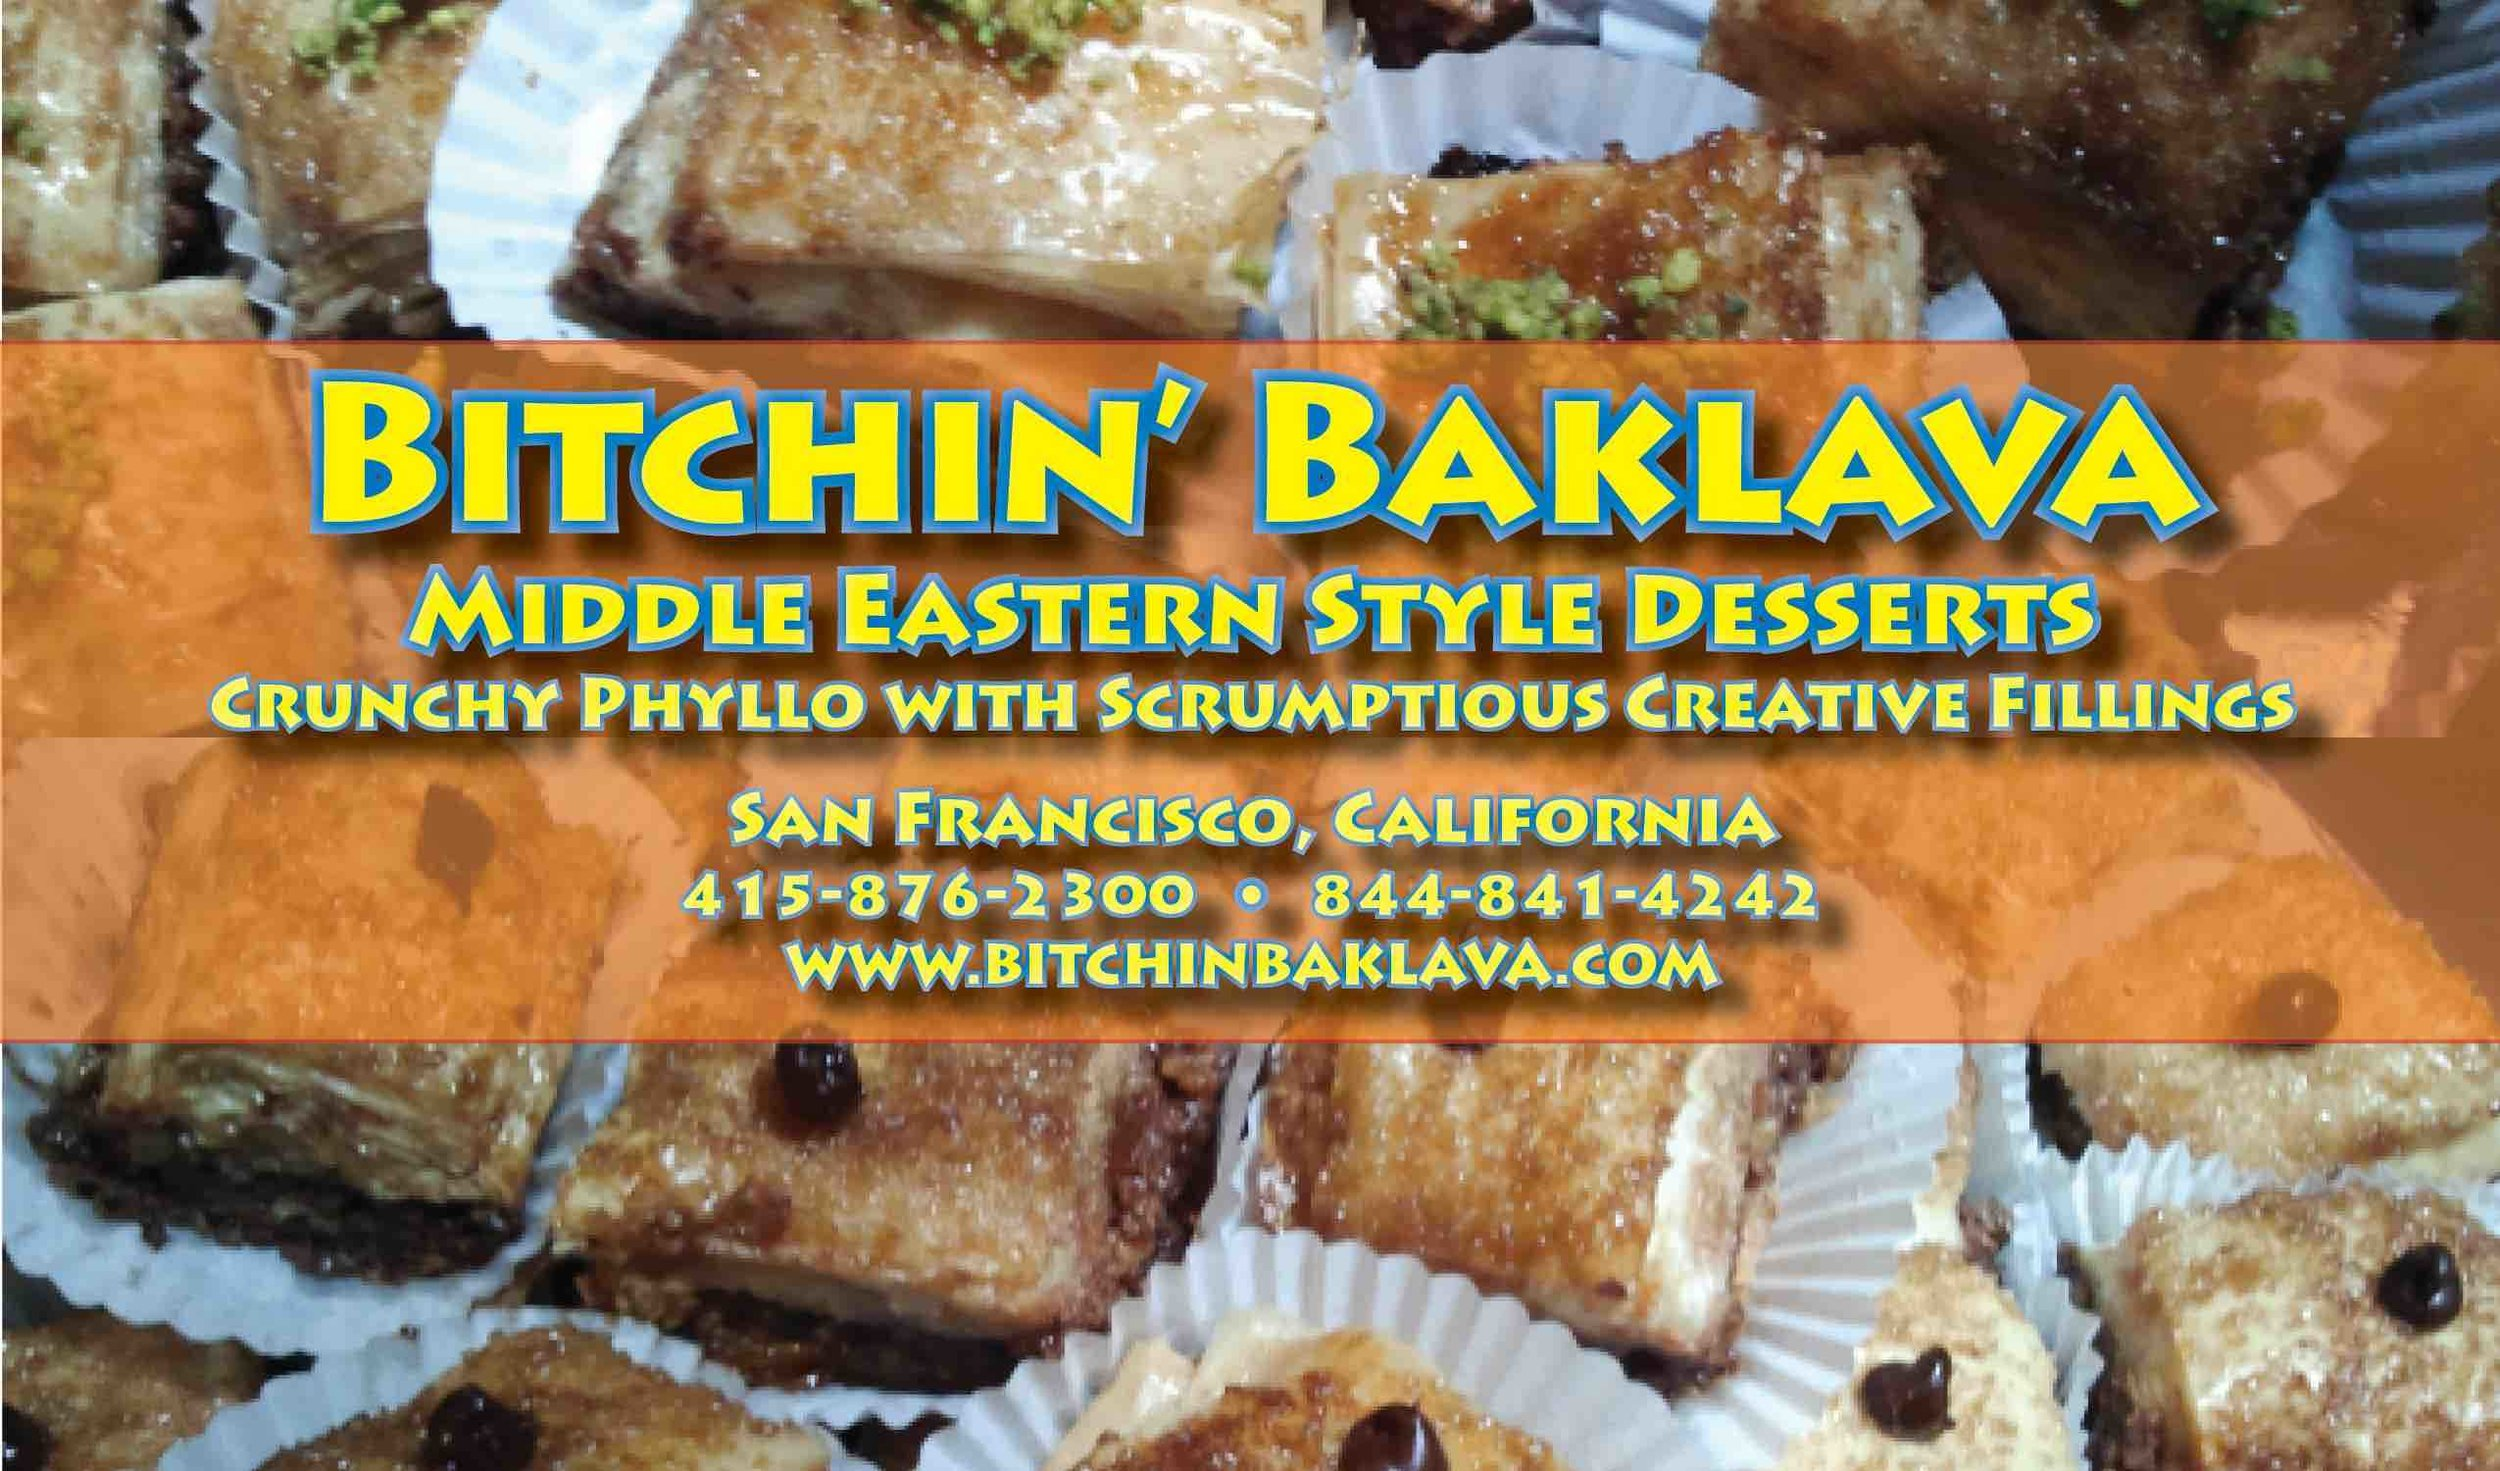 Bitchin' Baklava - One month free when subscribing for six months of seasonal baklava.